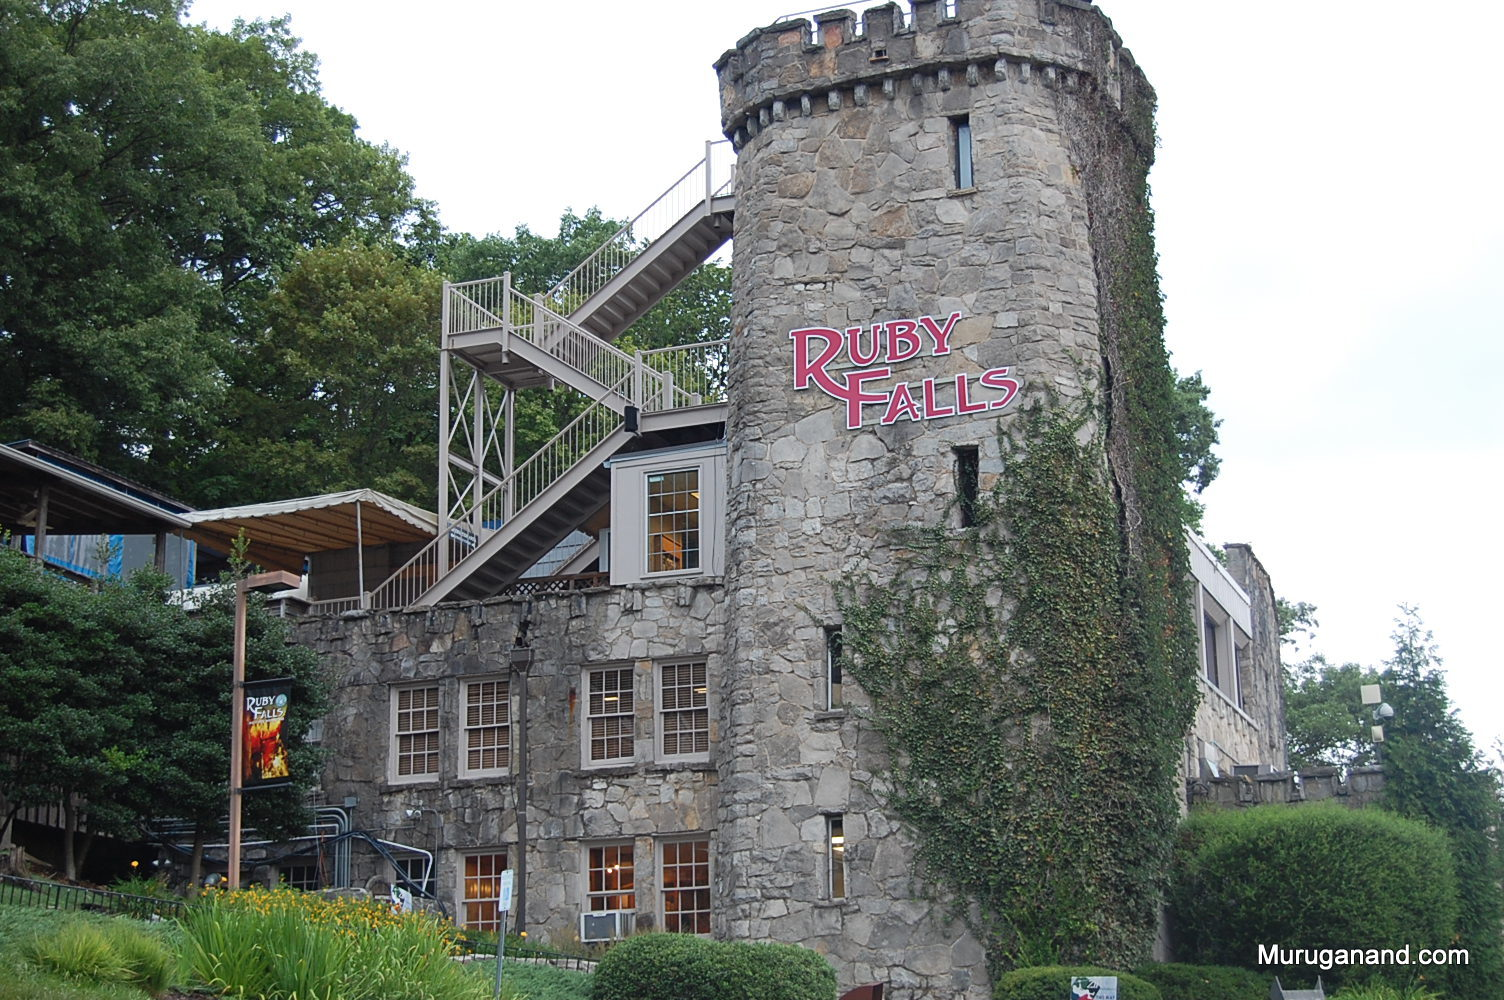 Visitor center and entrance to the Ruby Falls designed like Irish castle